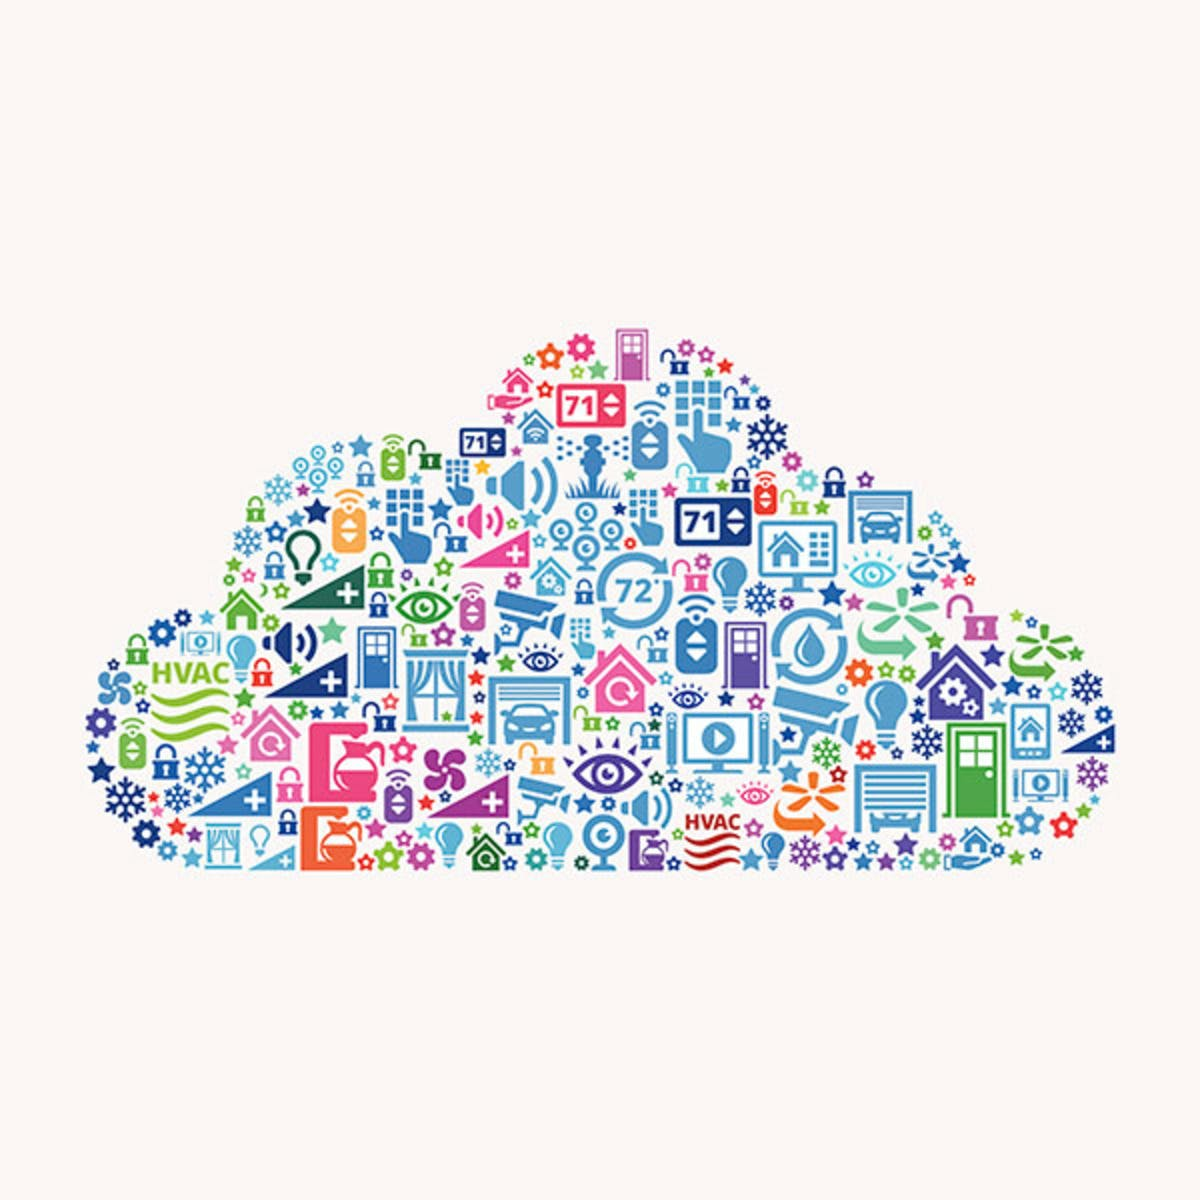 Internet of Things: How did we get here? (Coursera)